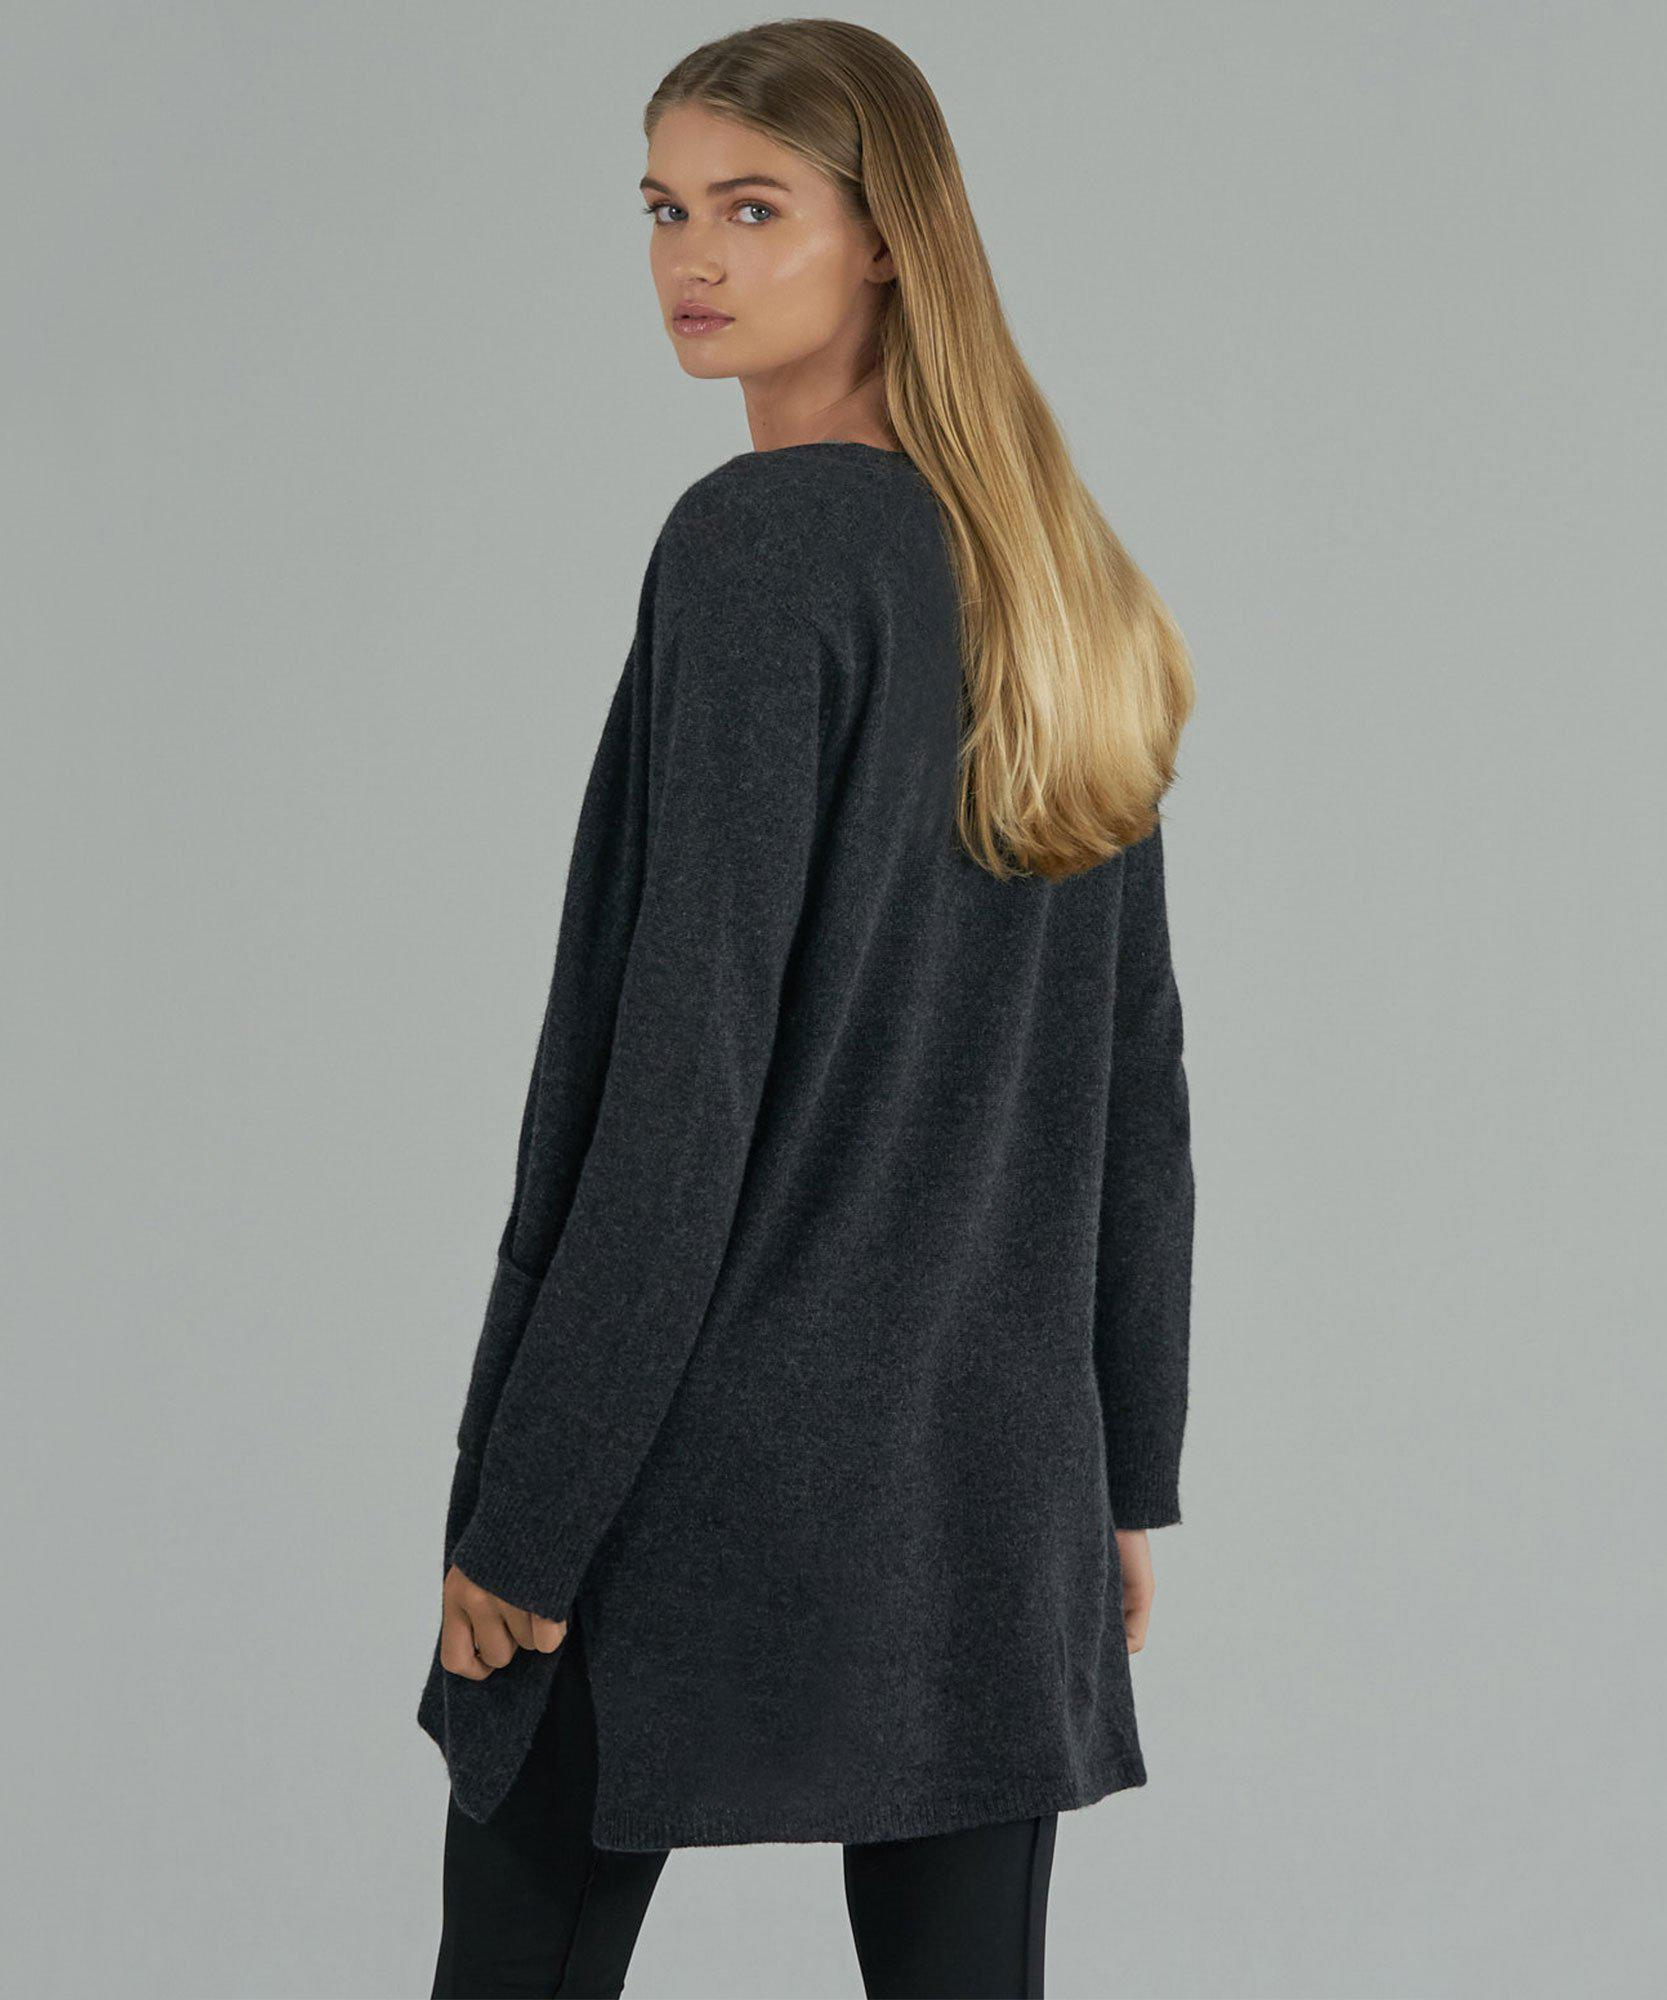 Cashmere Cardigan - Charcoal 3